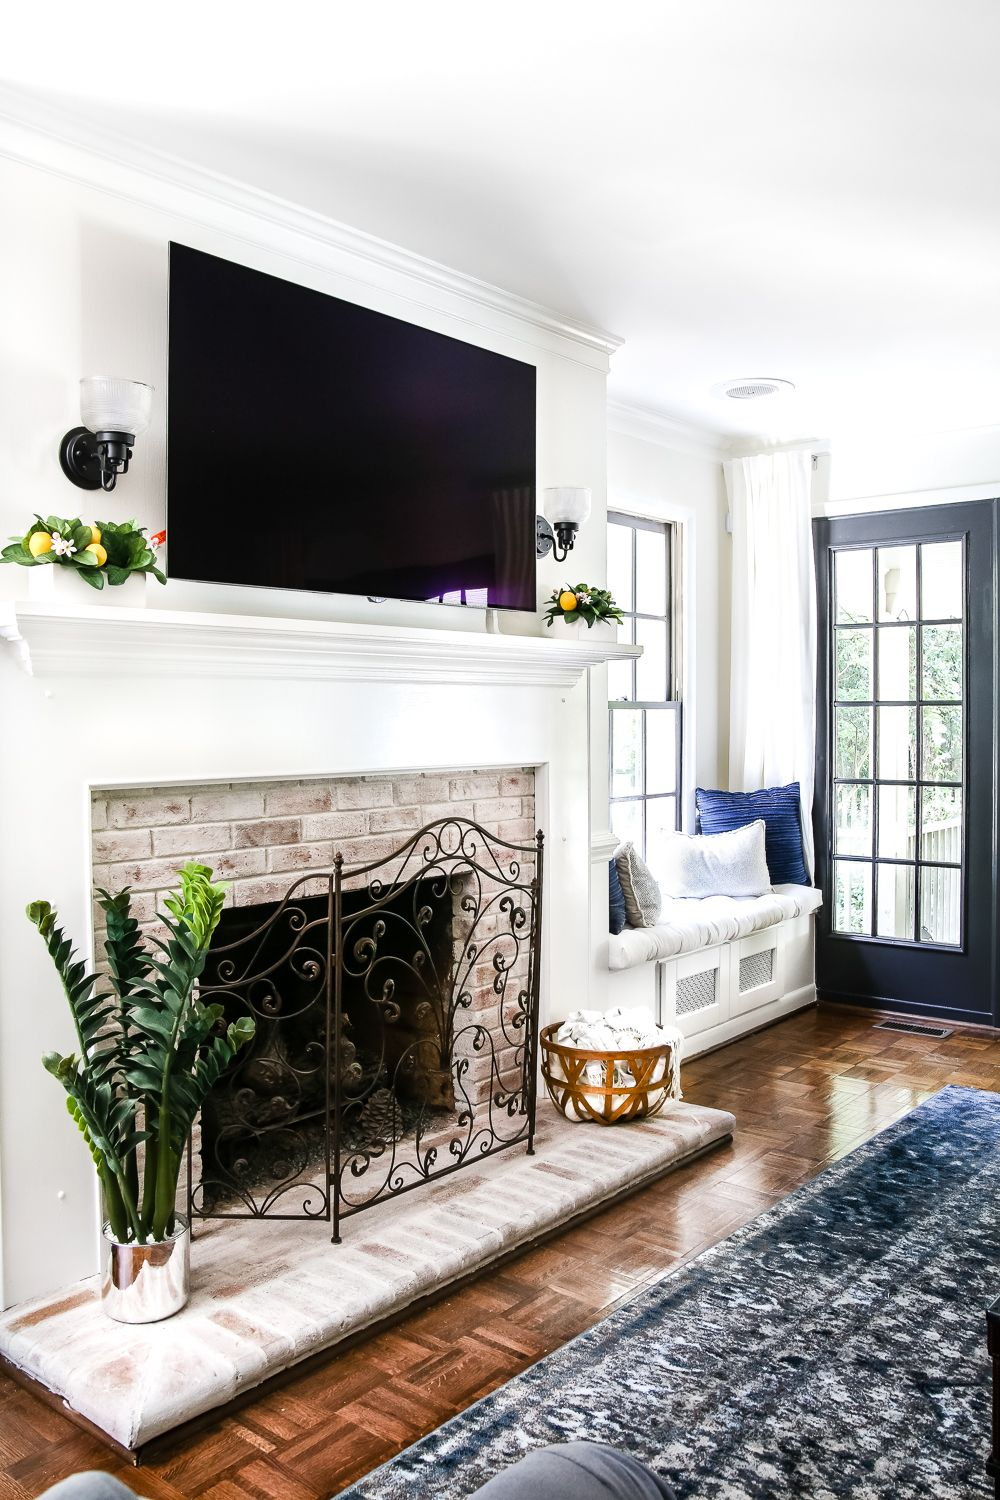 DIY Lime Washed Brick Fireplace | Pinterest | Brick fireplace ...